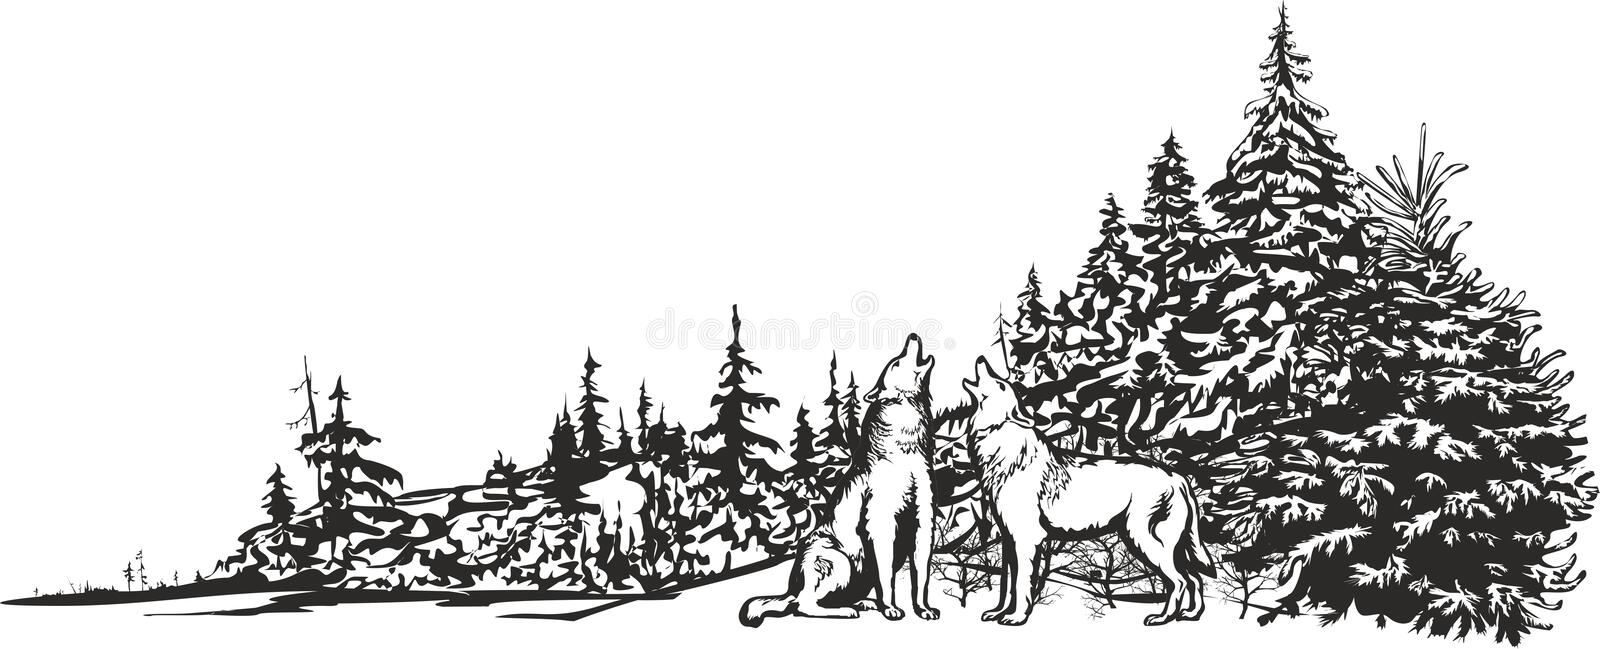 Howling wolves. Vector image of two wolves howling in the background of a winter forest stock illustration